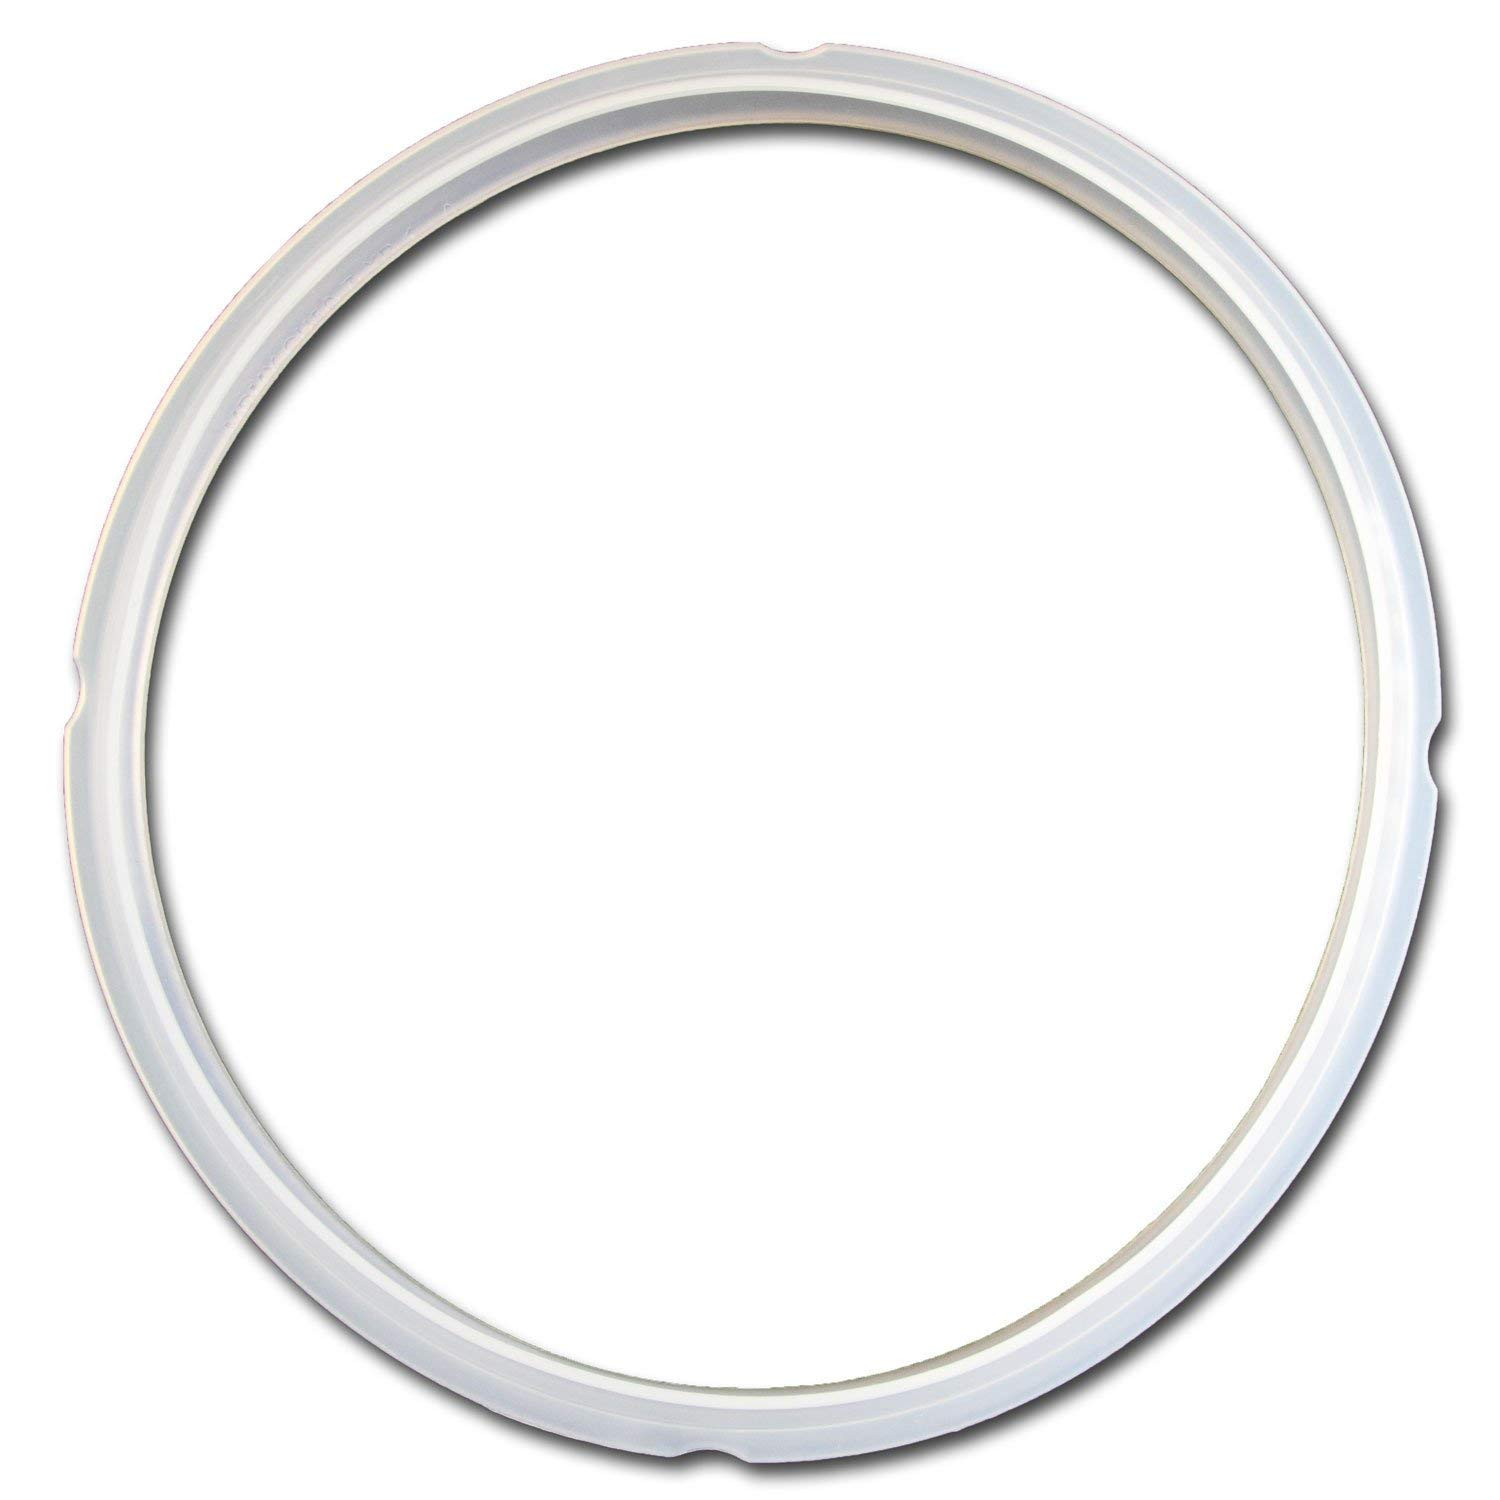 Sealing Ring For GoWISE 6 QT Electric Pressure Cooker Model: GW22620, GW22700, GW22703